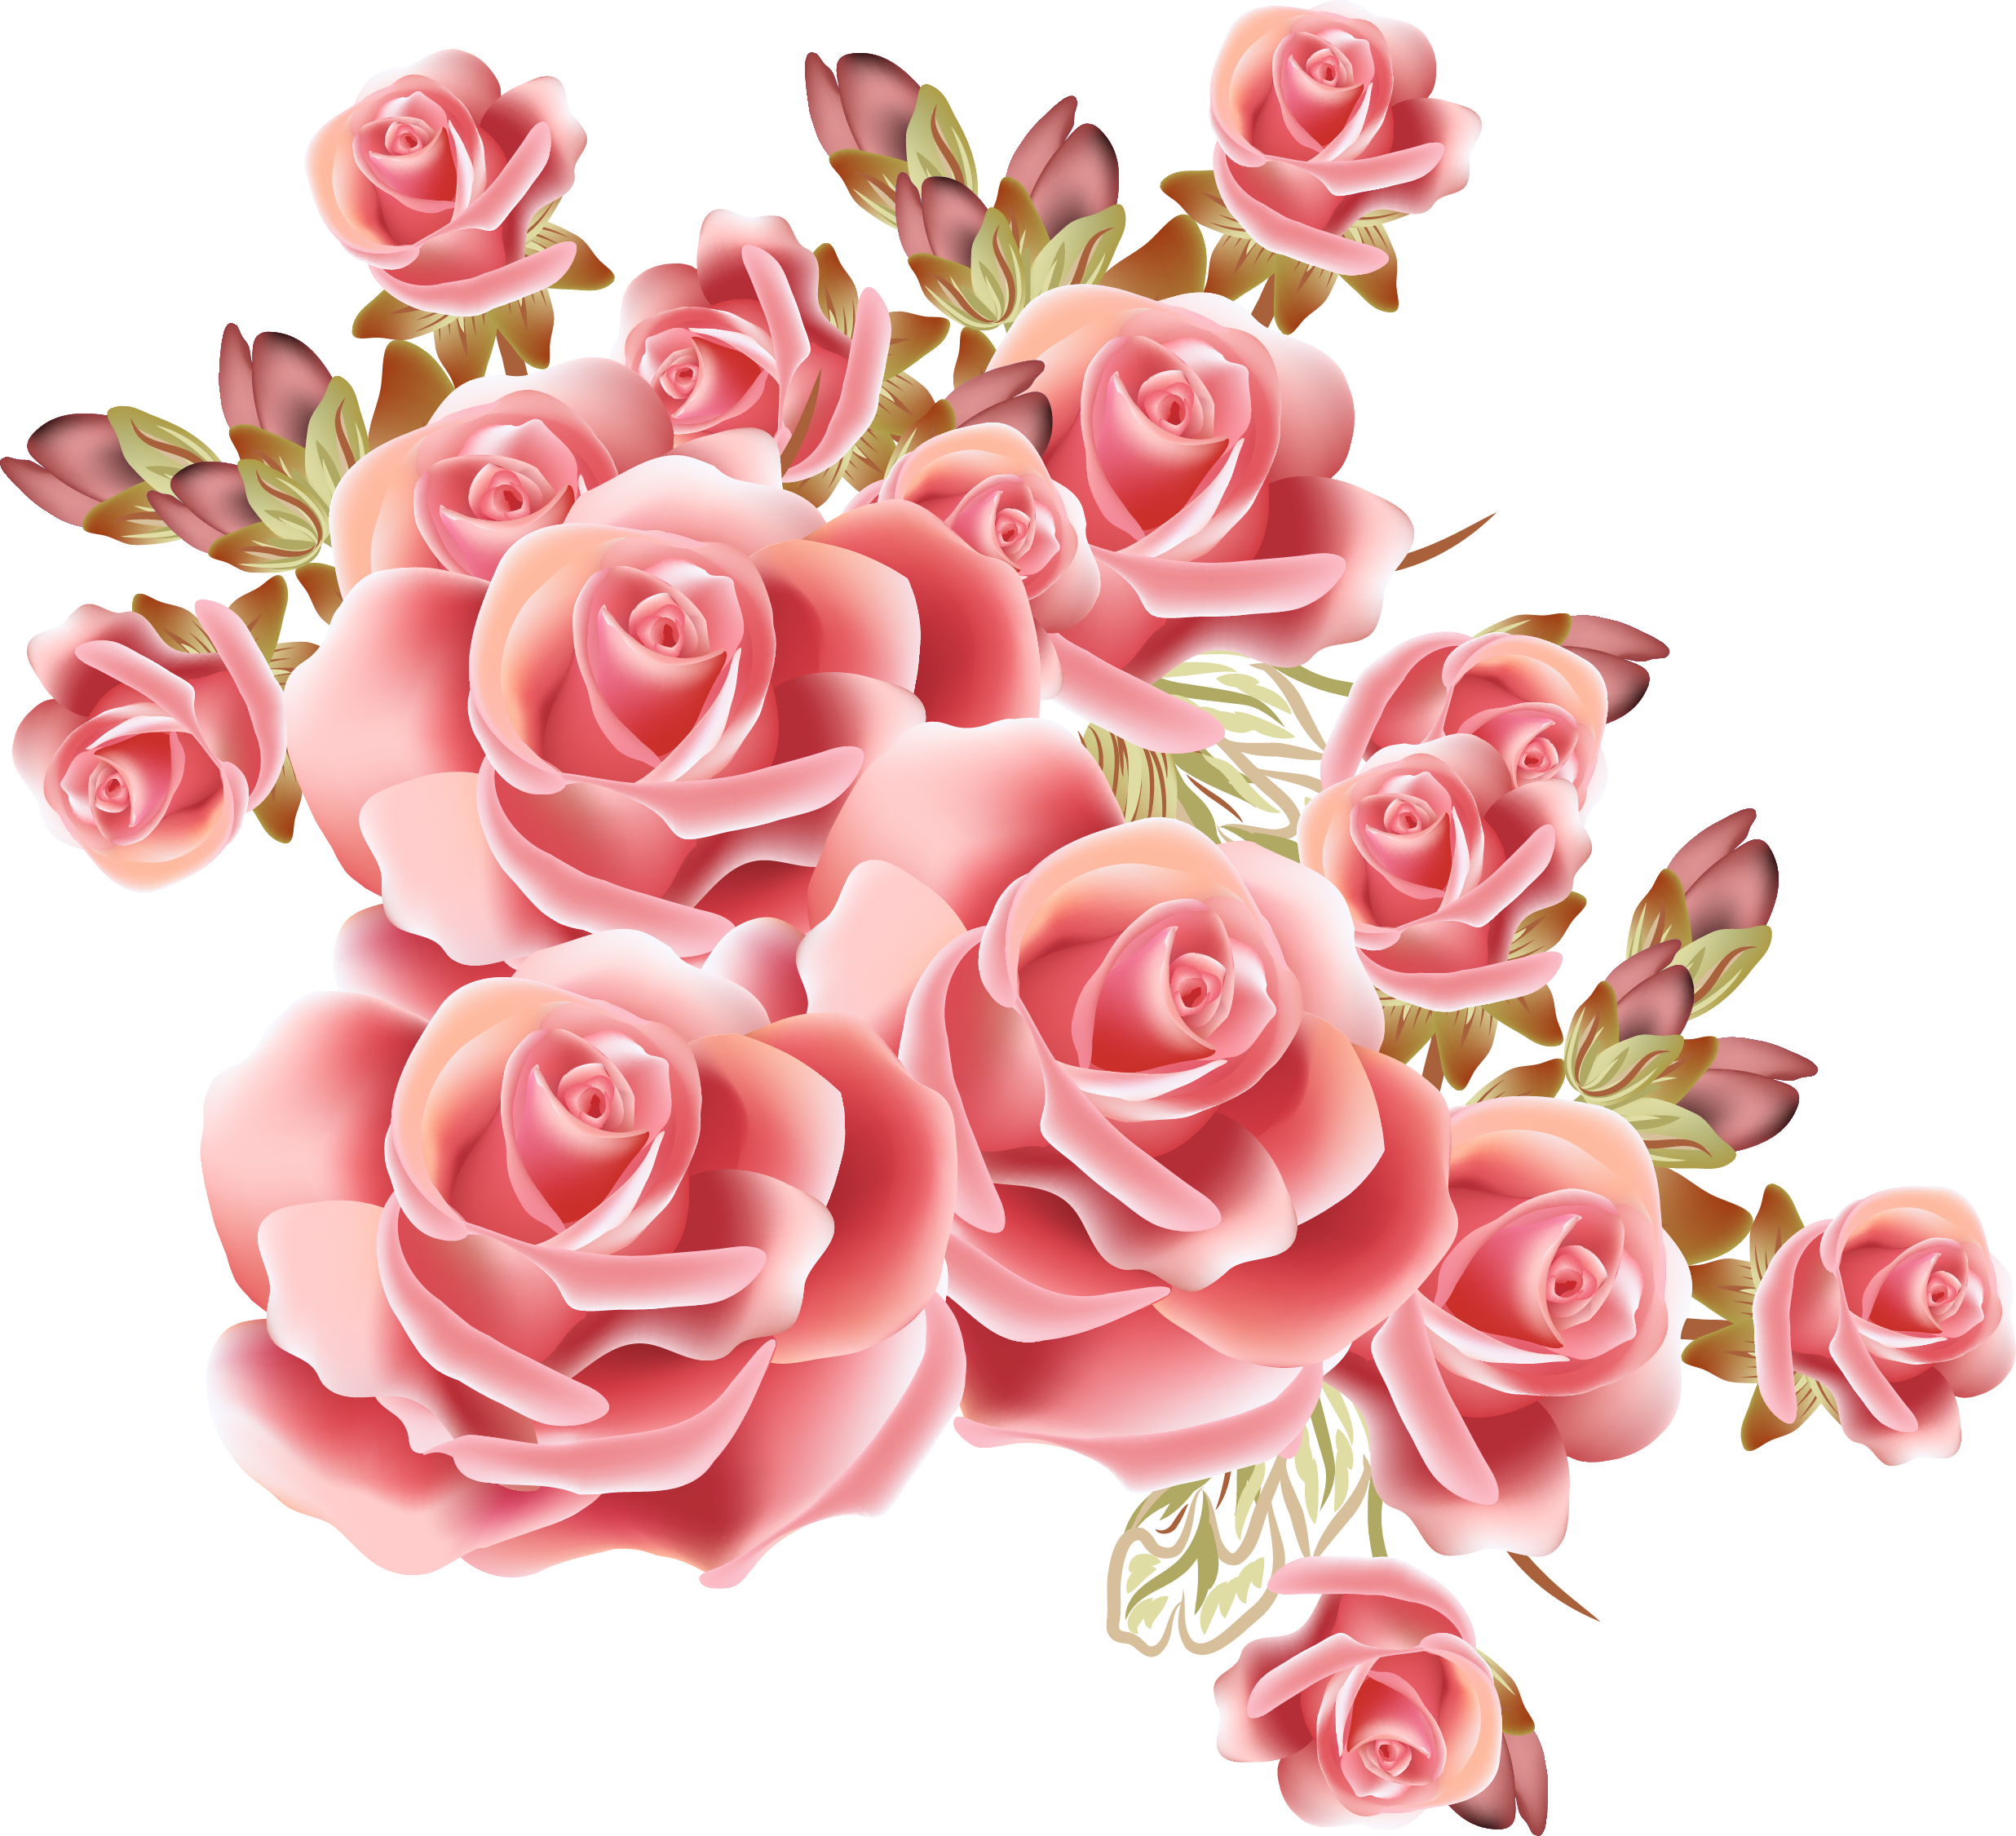 Stock drawing flower. Rose photography dream pink